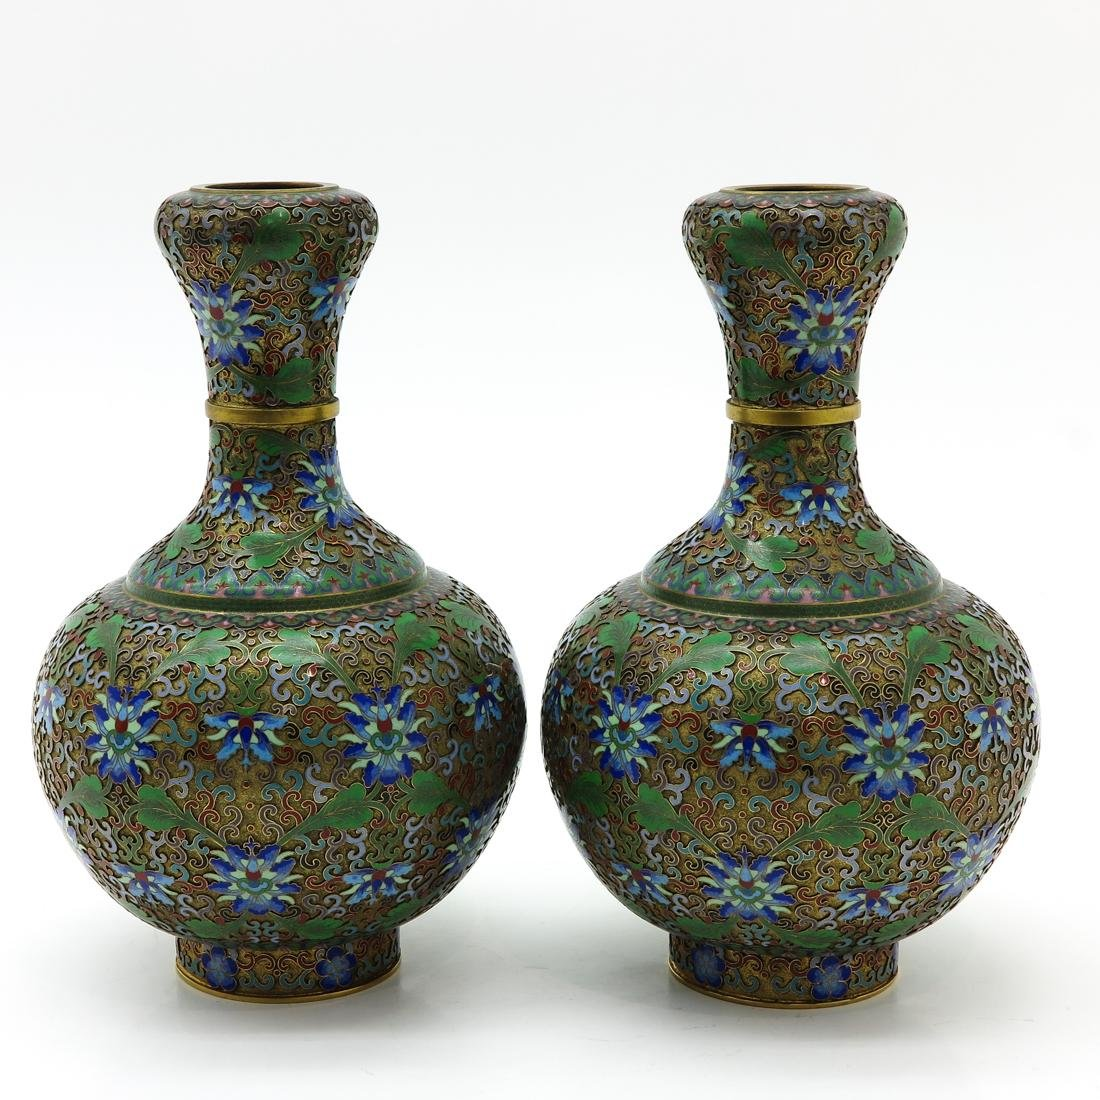 Pair of Cloisonne Vases - 4